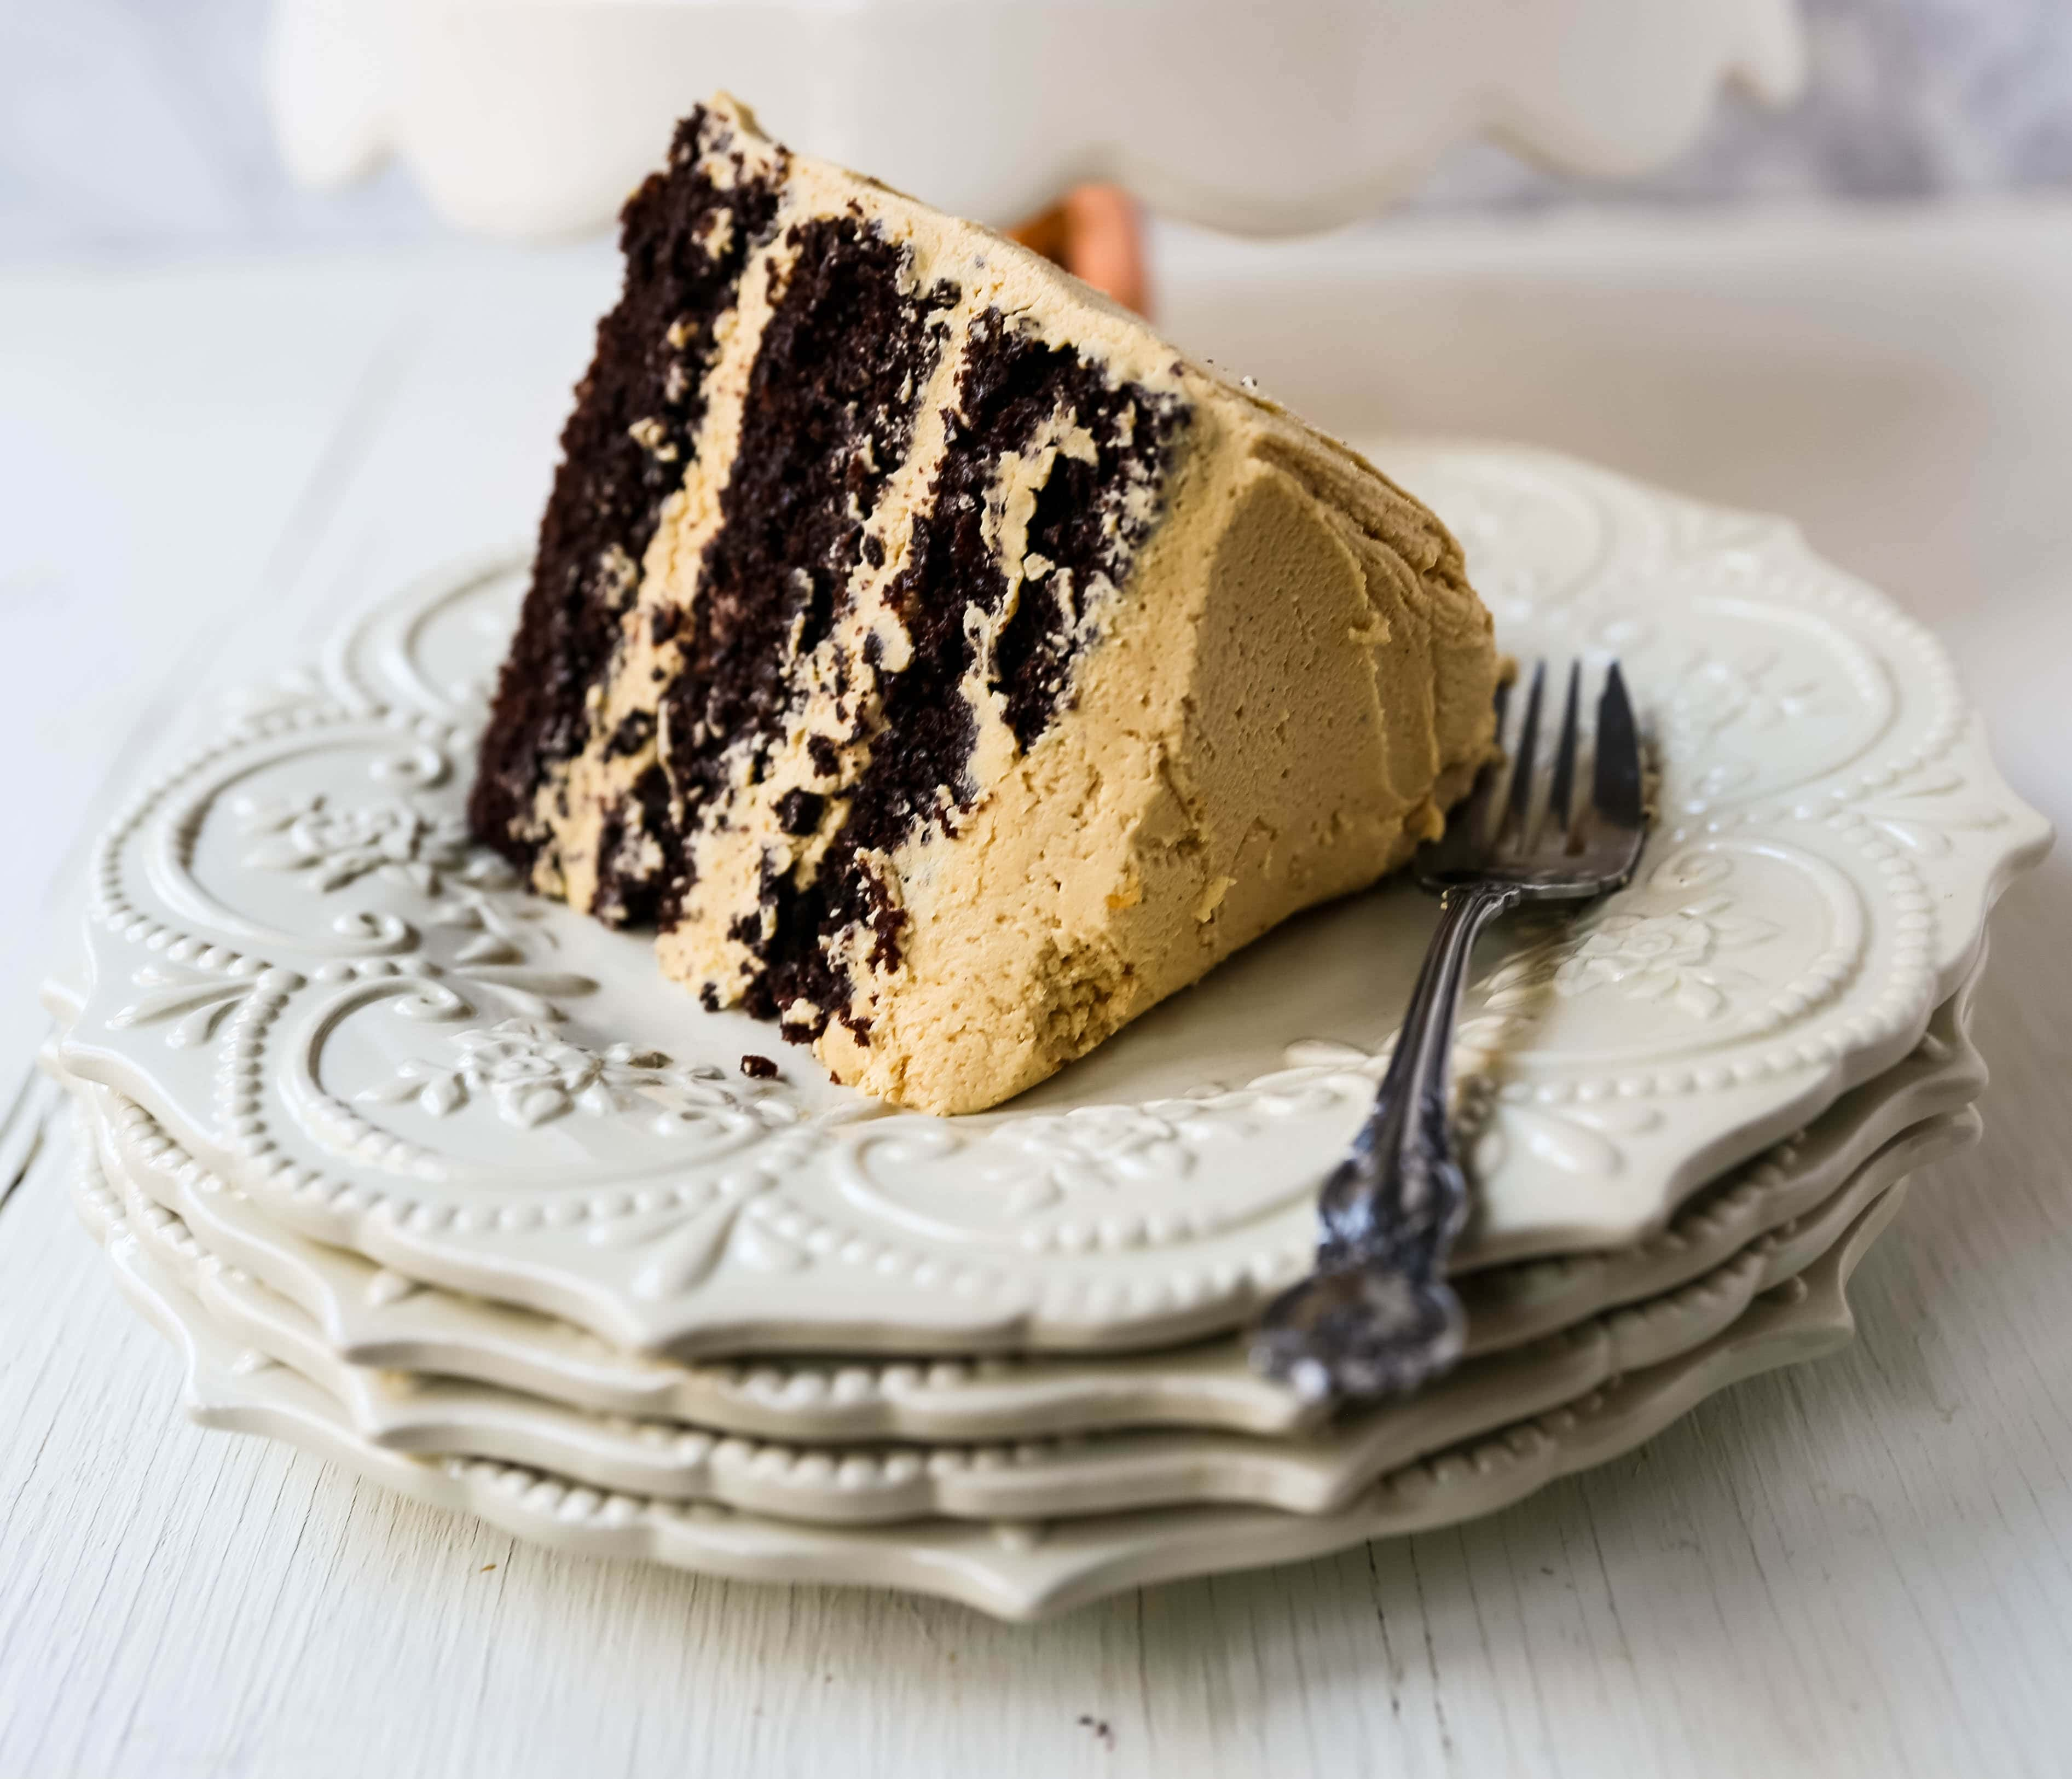 Chocolate Cake with Peanut Butter Frosting A moist 5-Star Rated Chocolate Cake with Creamy Peanut Butter Frosting topped with Peanut Butter Cups. www.modernhoney.com #peanutbutter #chocolatepeanutbuttercake #chocolatecake